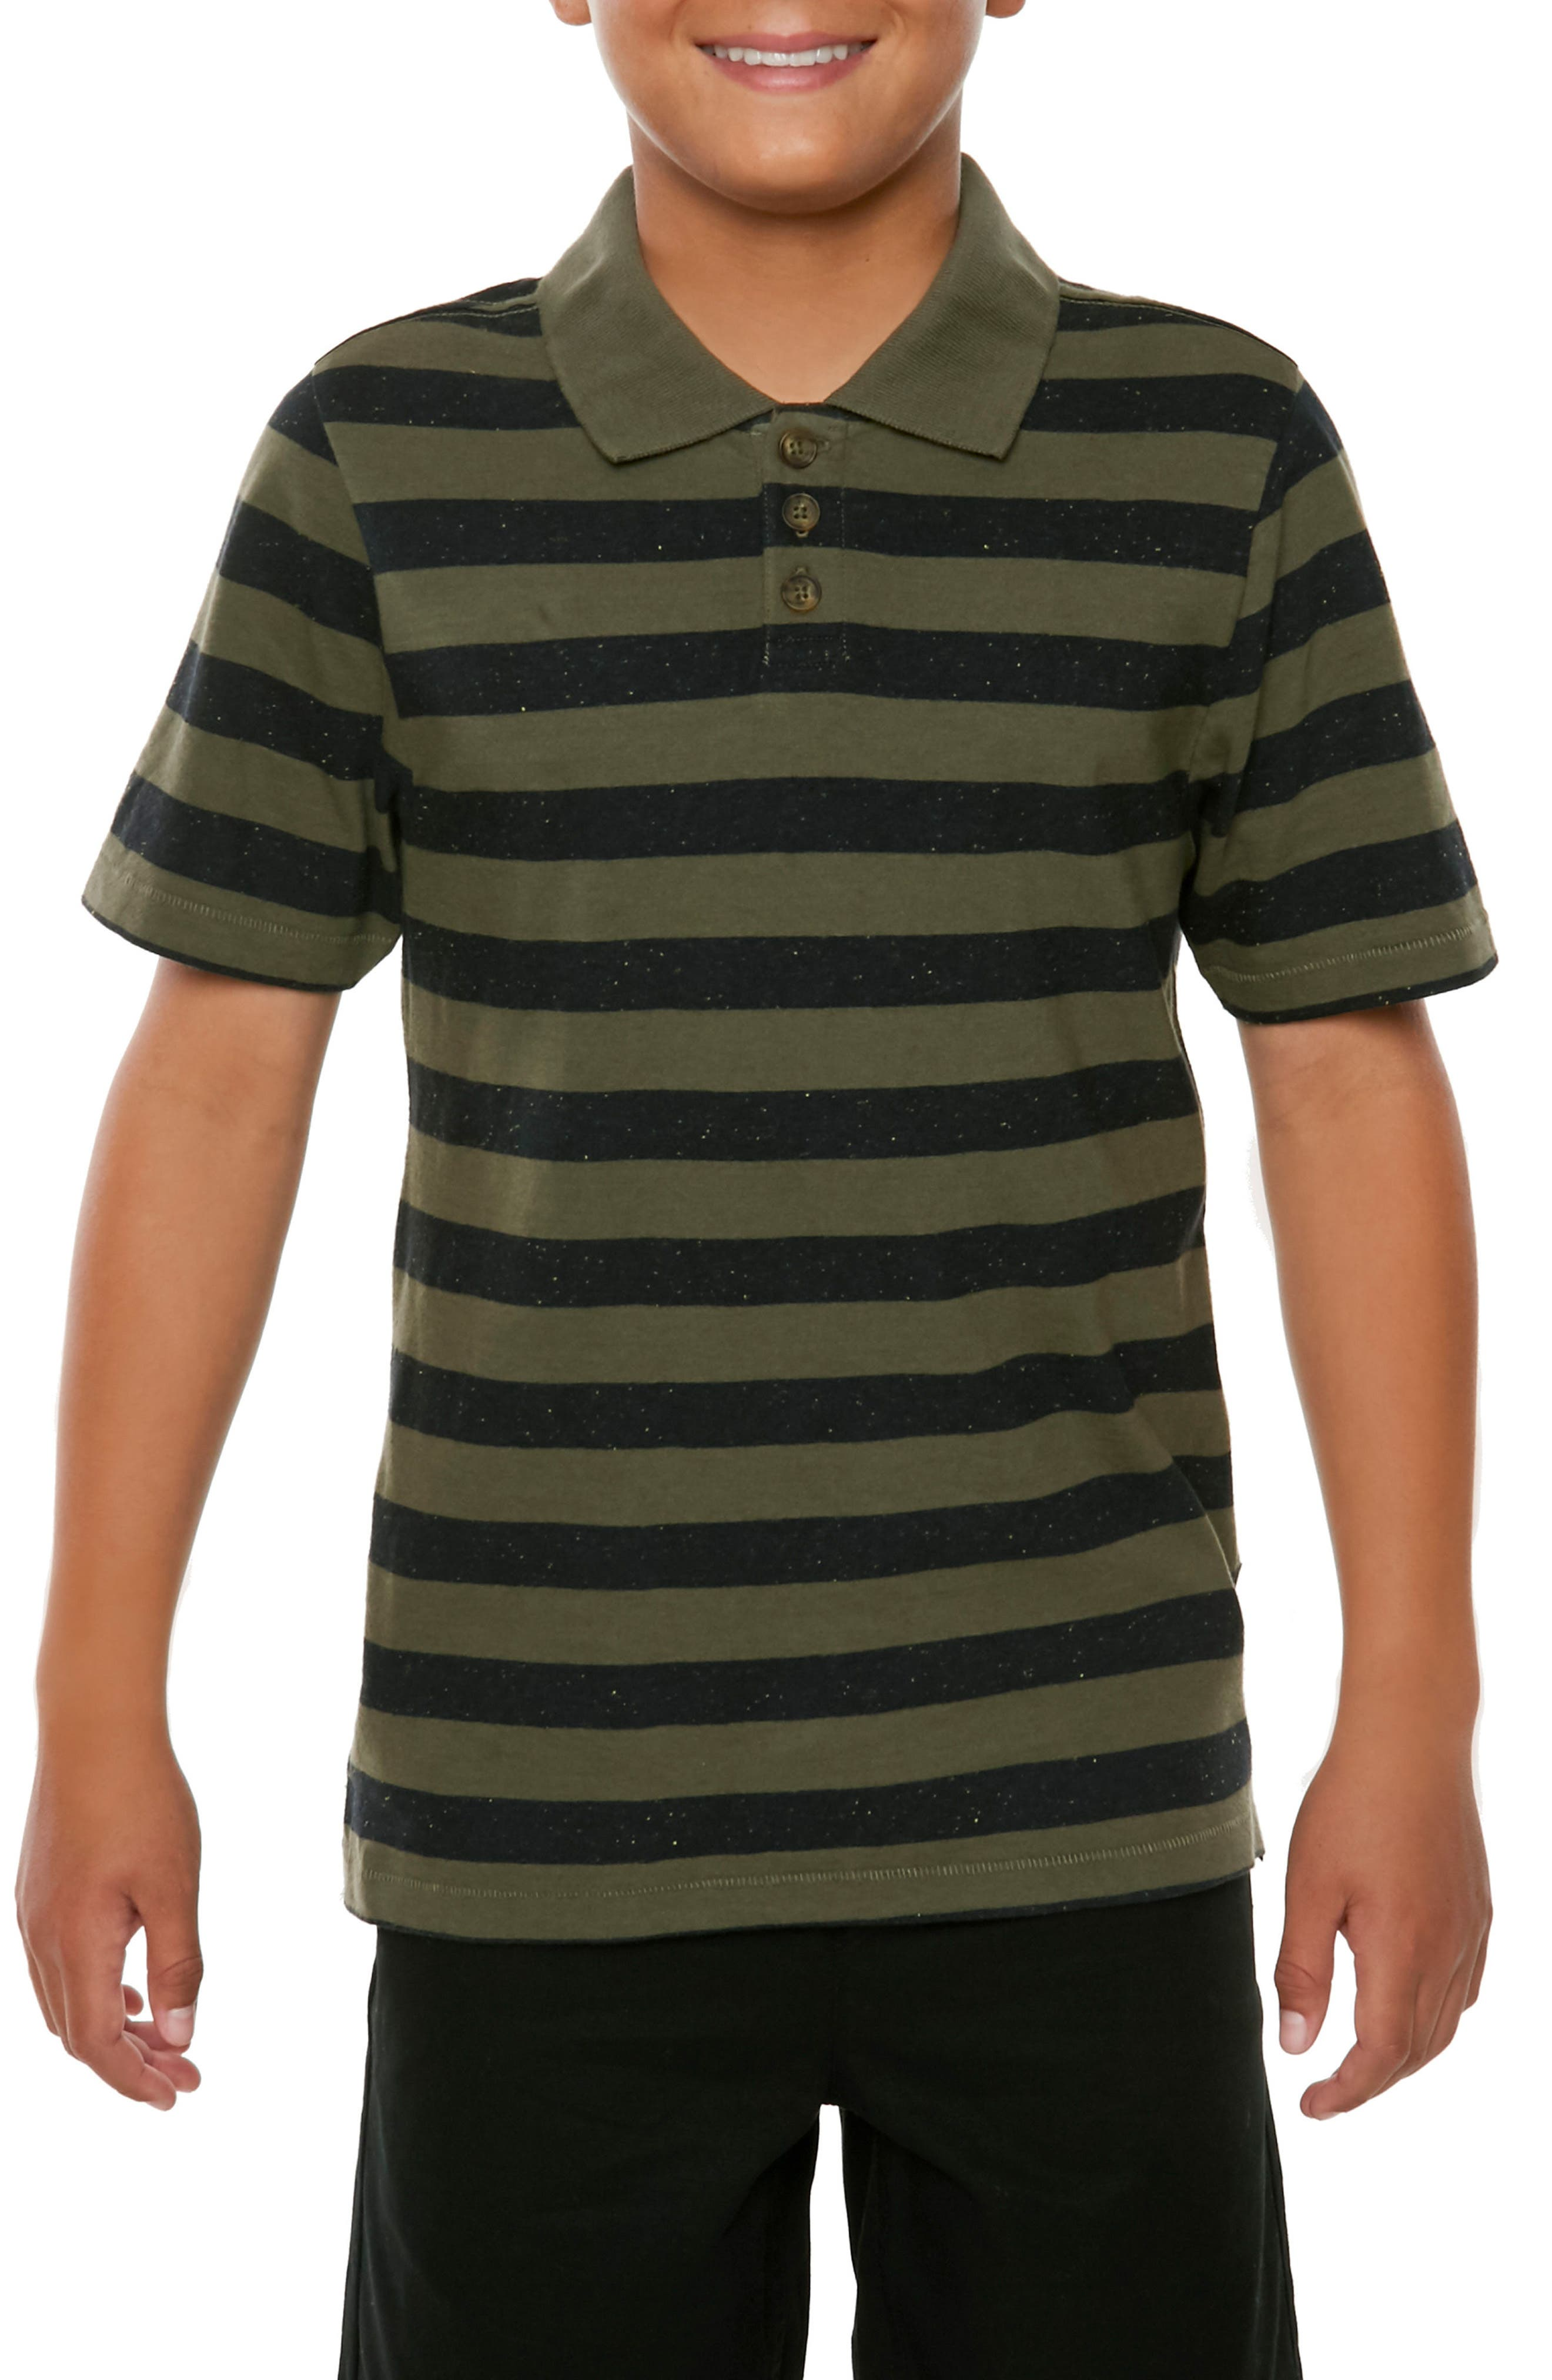 Scoundrel Striped Polo,                             Alternate thumbnail 3, color,                             Army Green